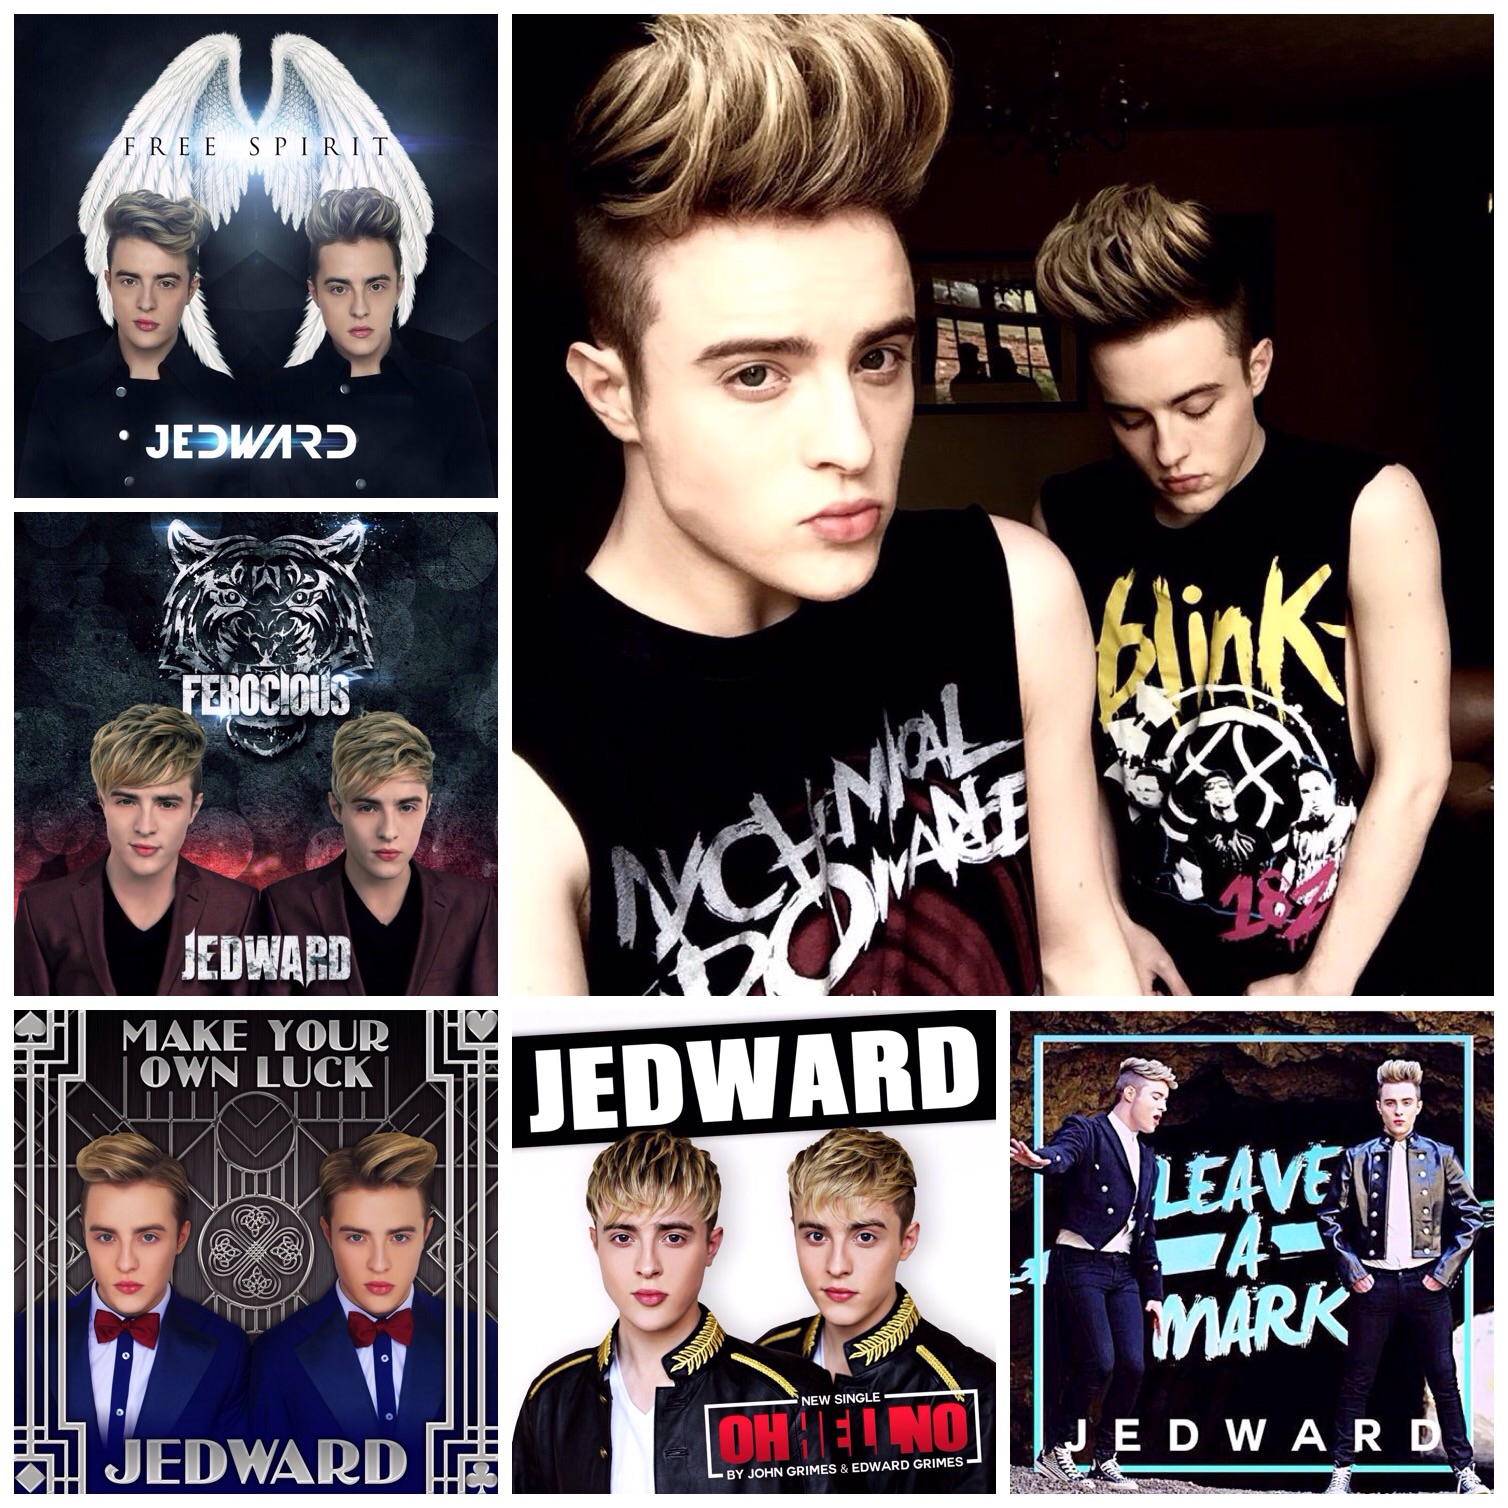 Written by Jedward